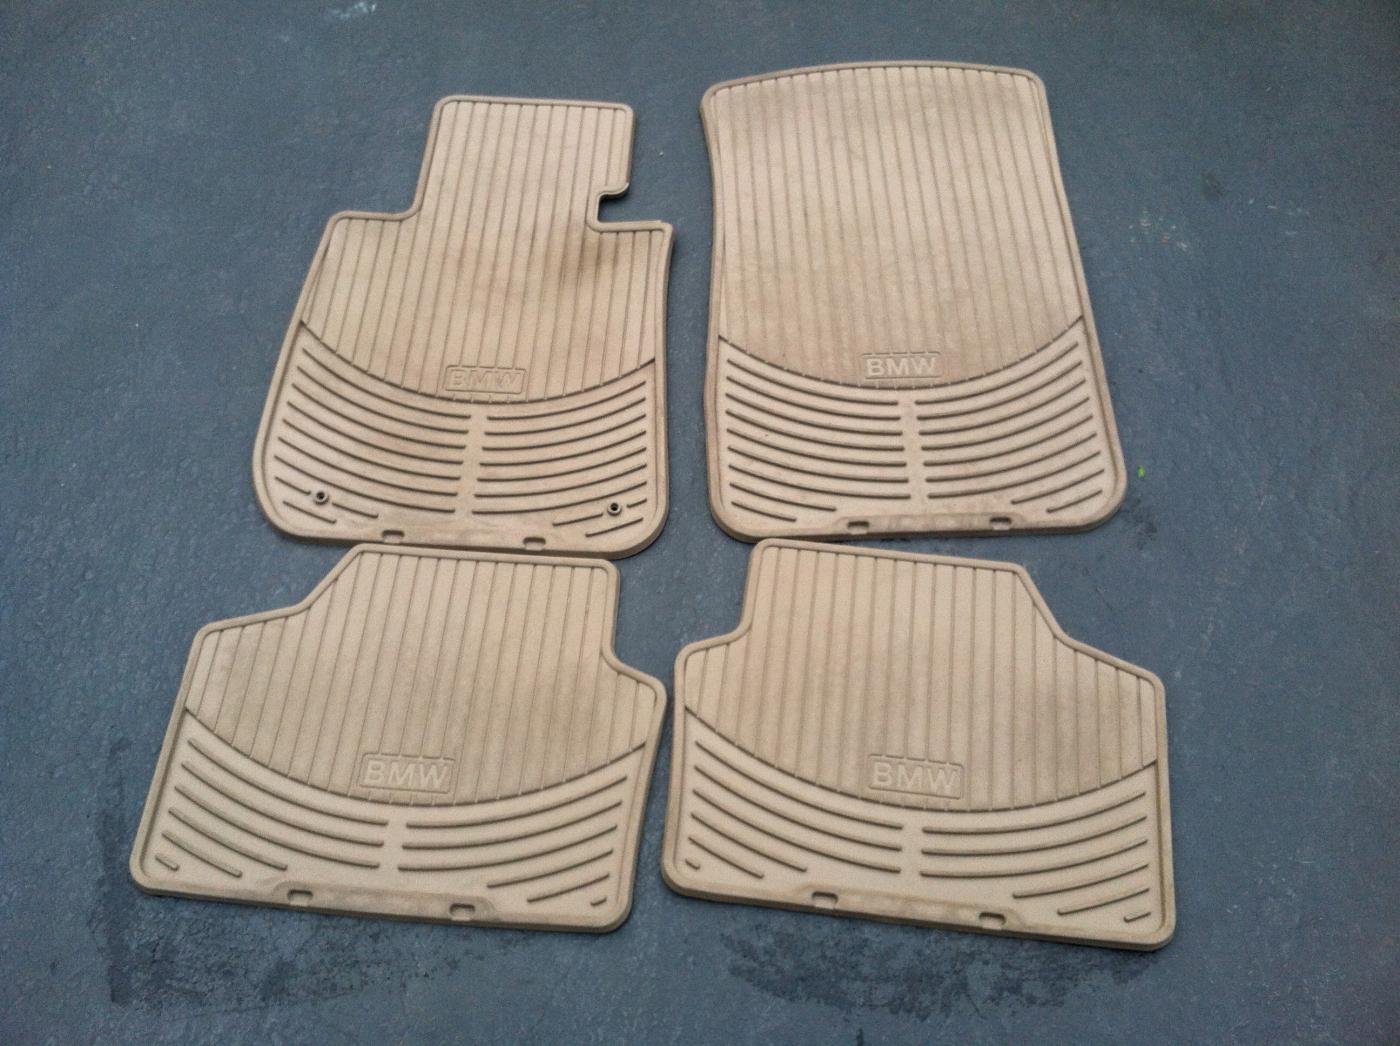 Bmw rubber floor mats e90 - Attached Images